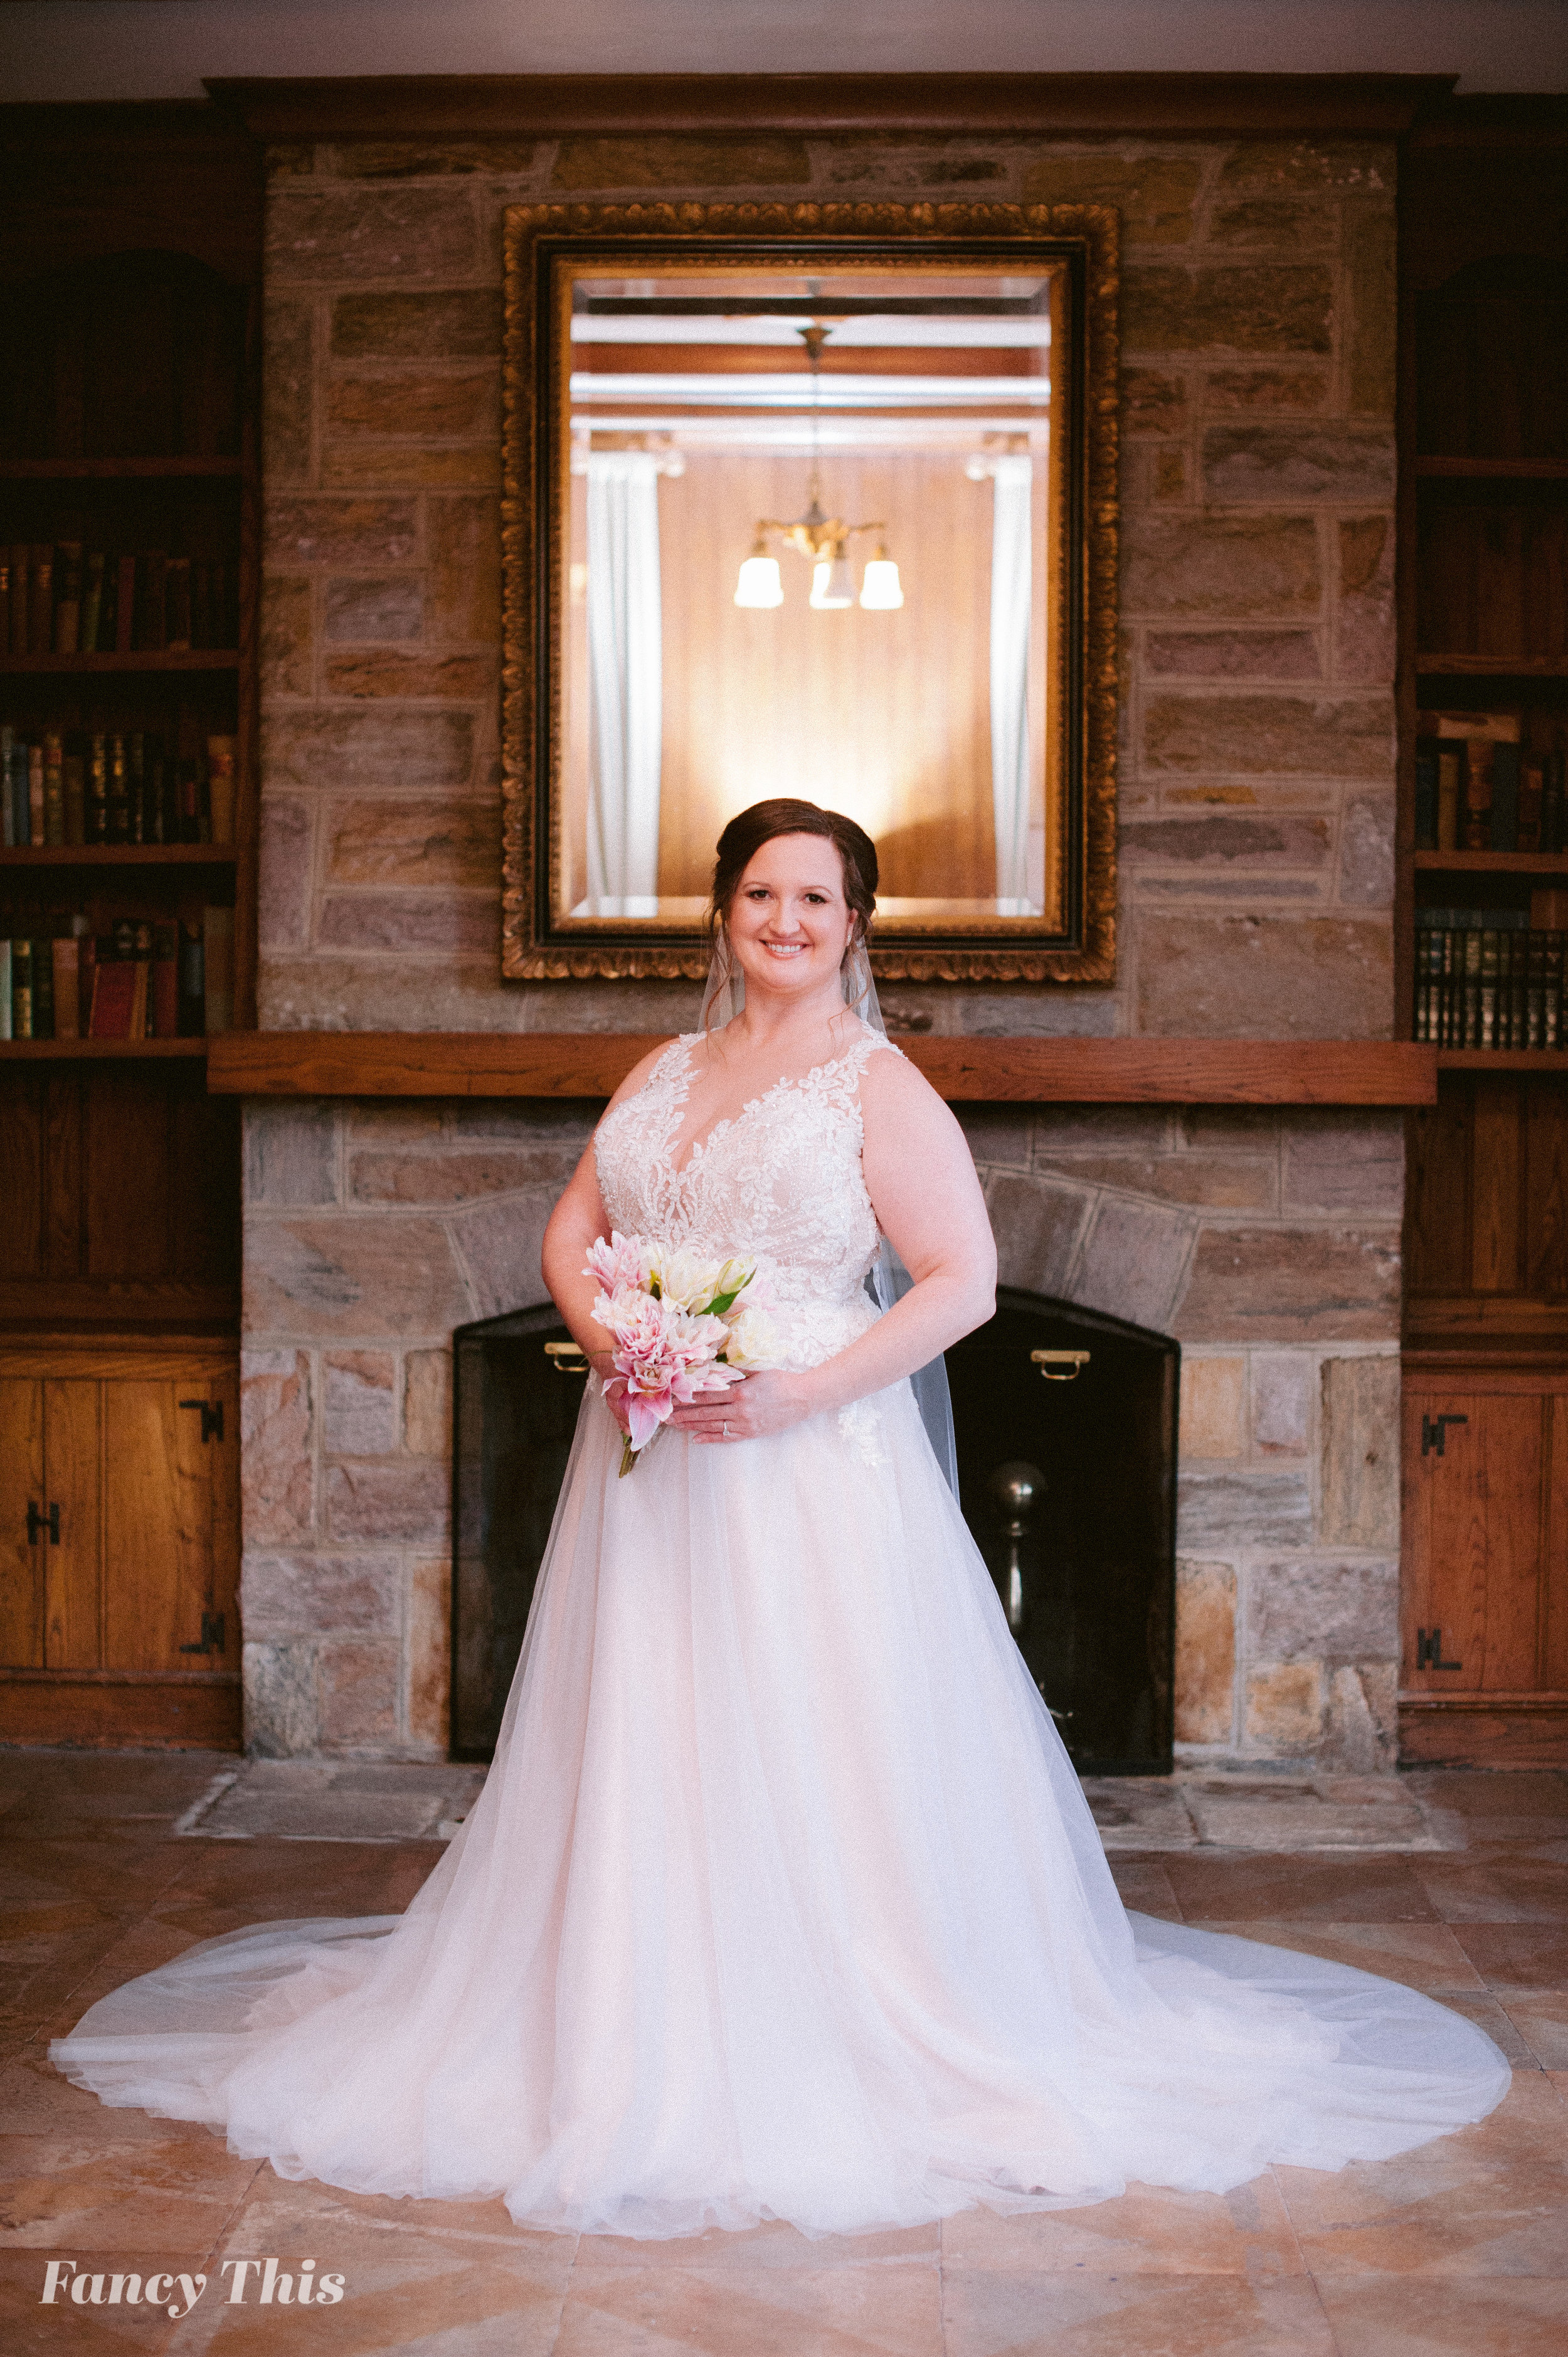 stacyrevels_raleighbridals_fancythis-22.jpg